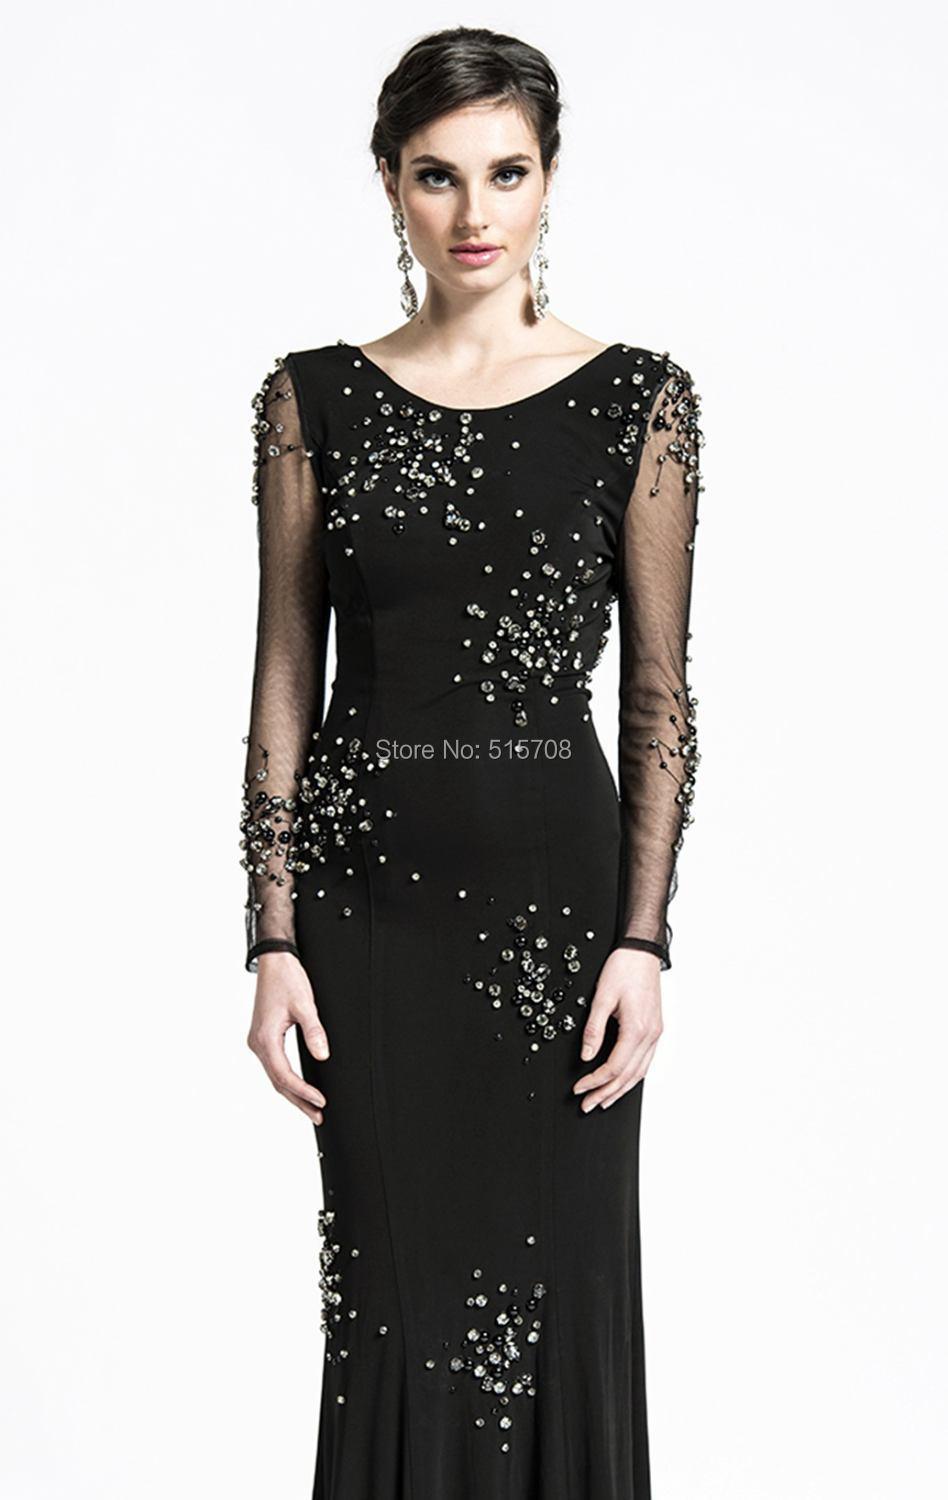 Gorgeous 2015 New Design Long Sleeve Backless Black White Shining Beads Cheap Formal Pageant Party Evening Gown Prom Dress - Shop515708 Store store